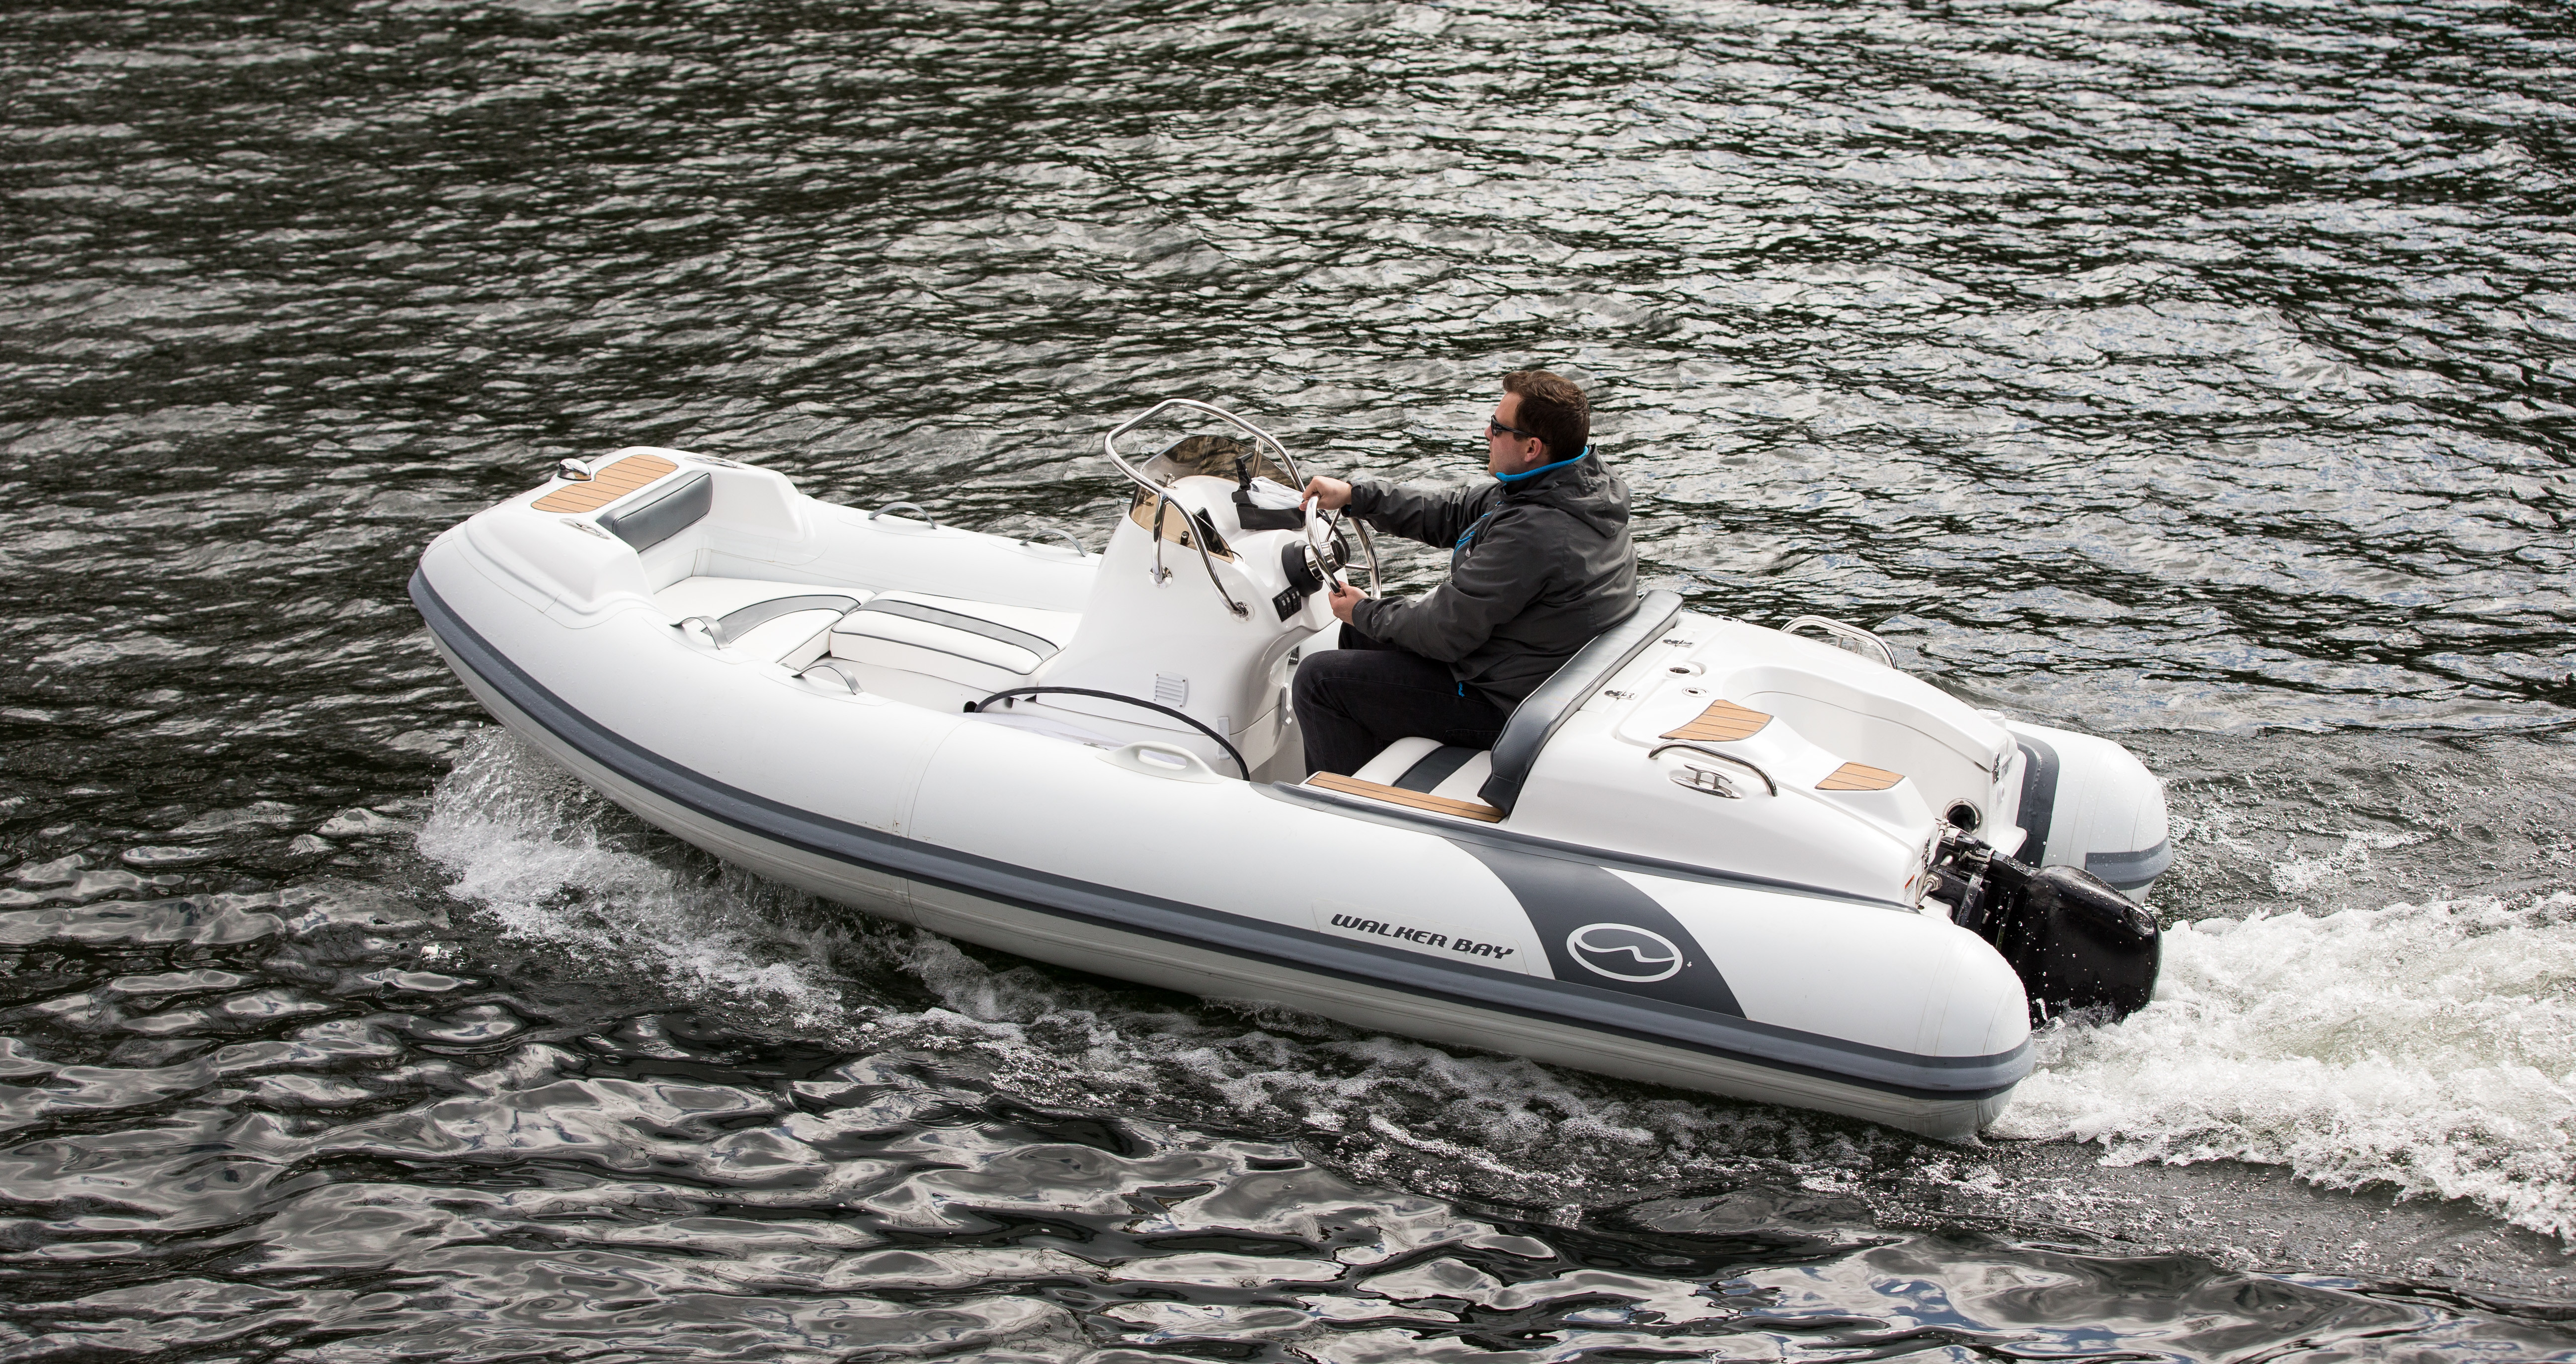 Tesla For Boats Seattle Startup Pure Watercraft Launches Quiet Convenient Electric Outboards Geekwire